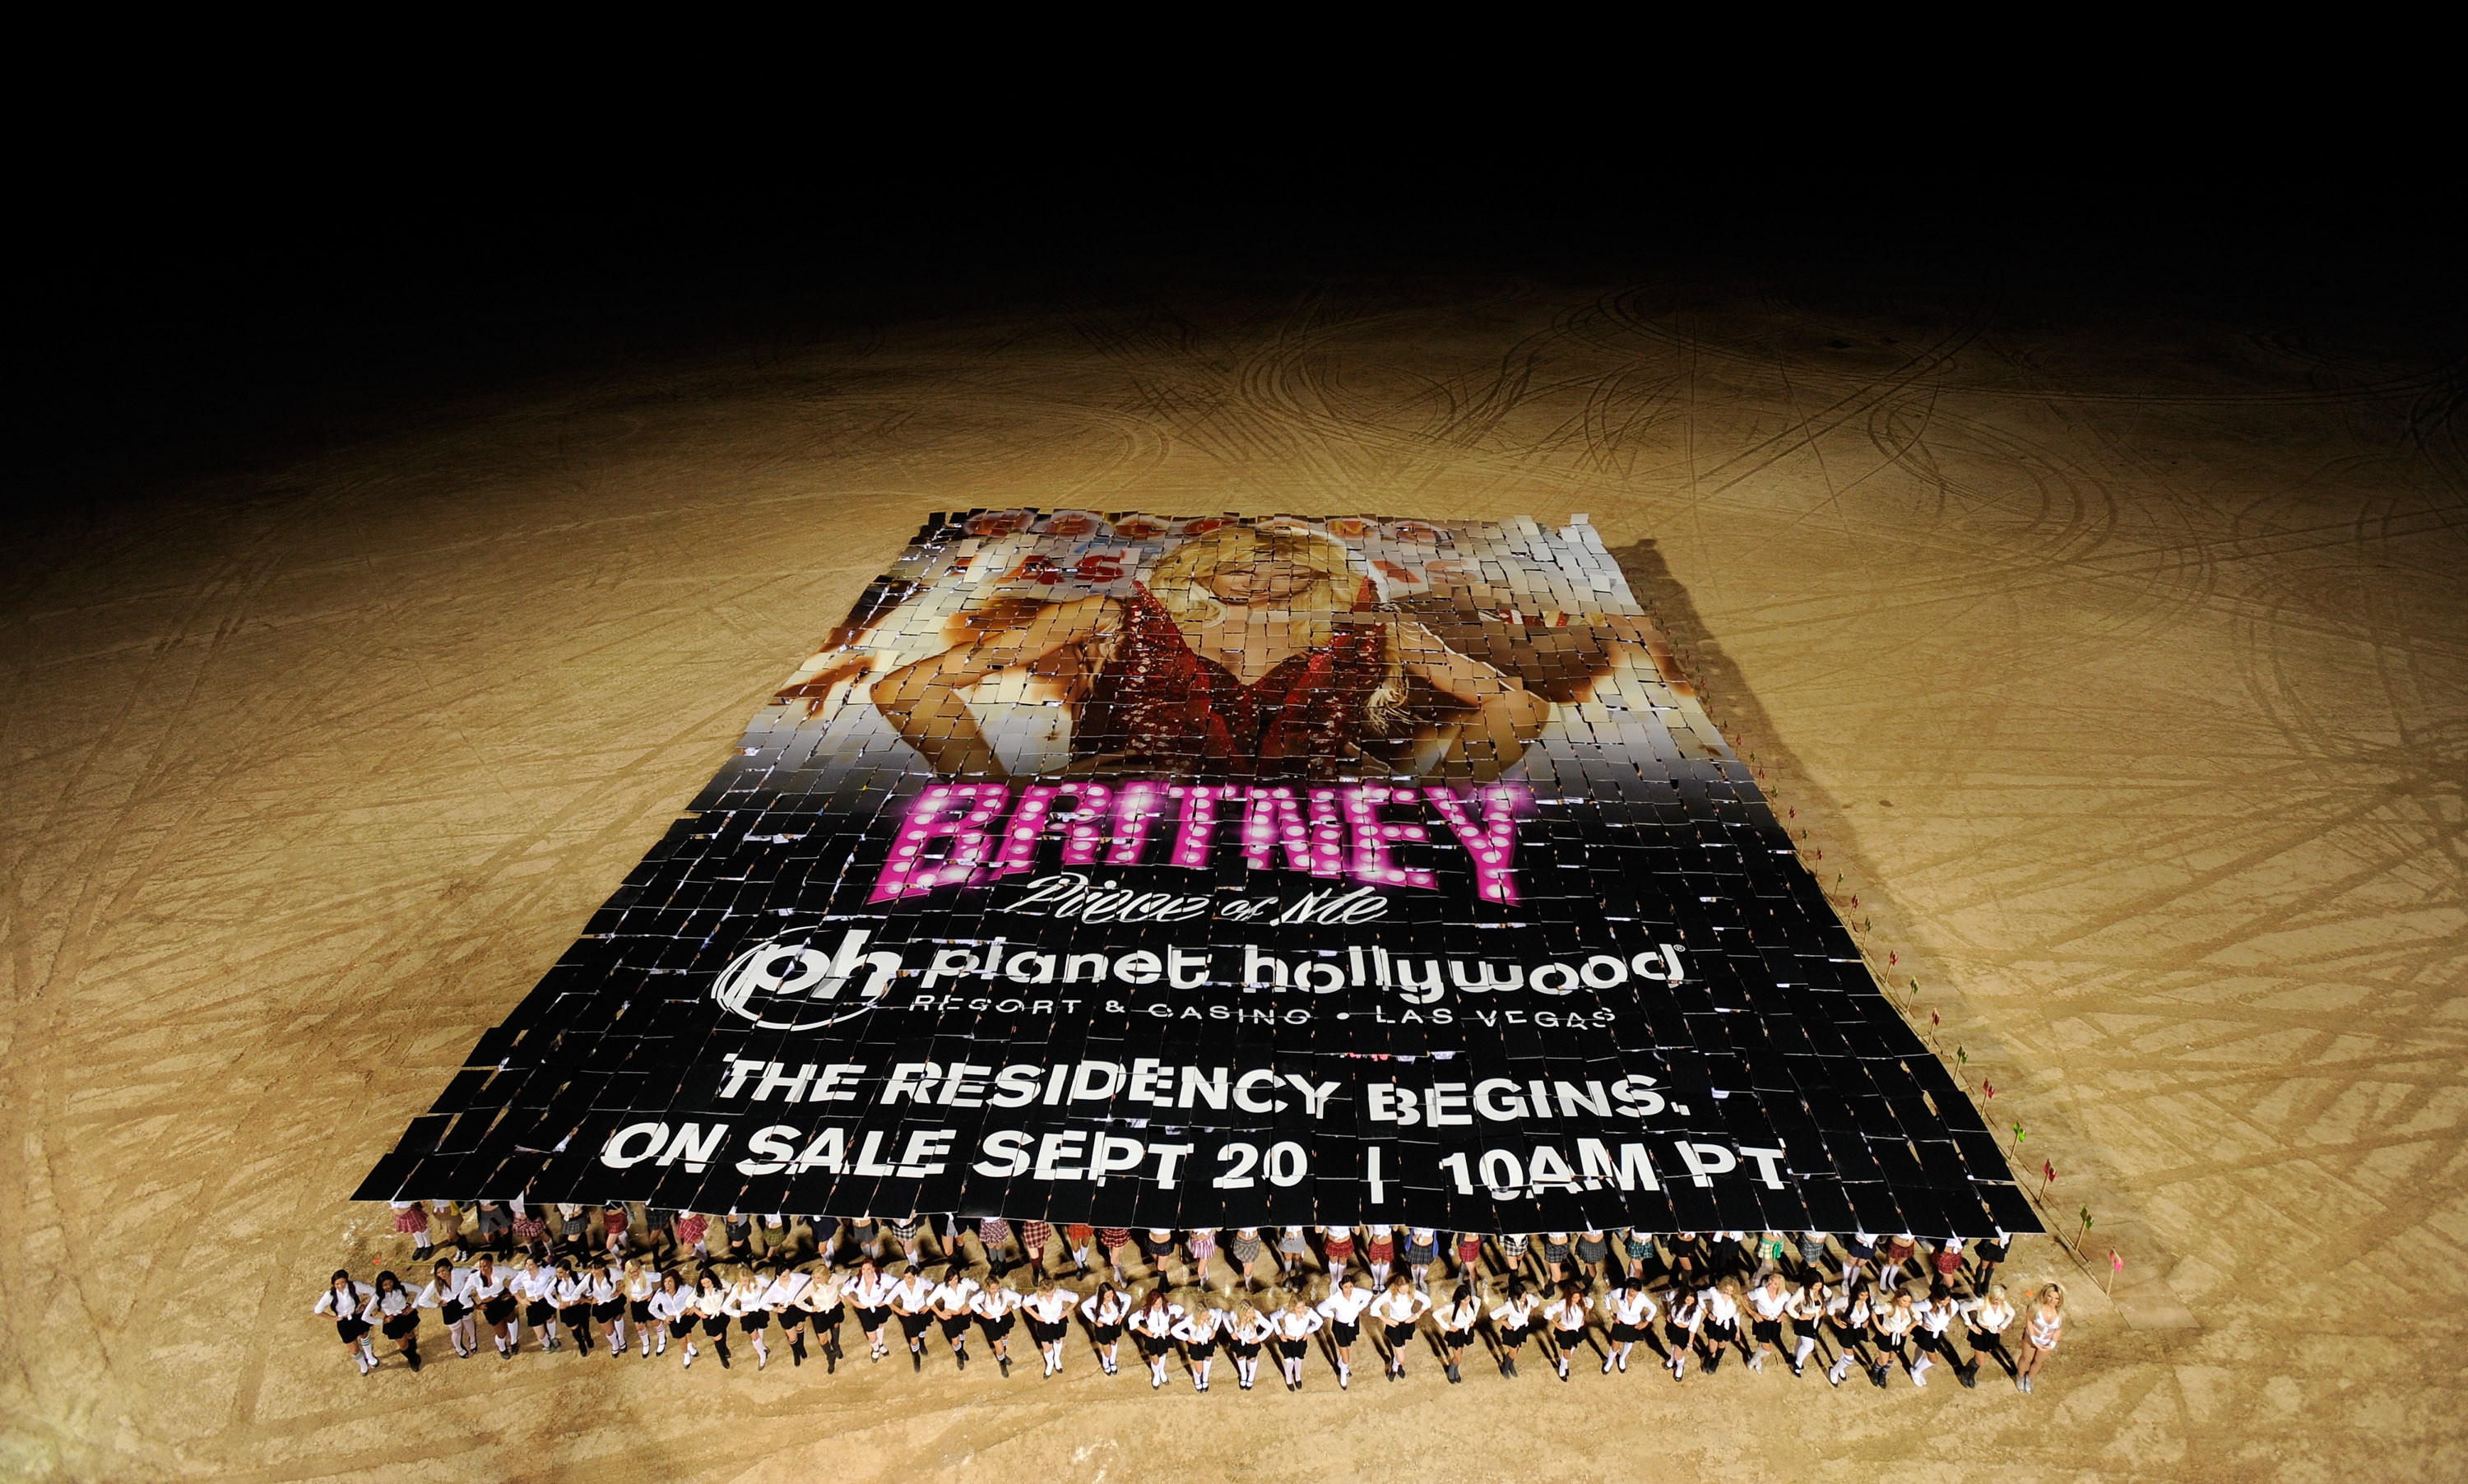 Britney Spears Lands Las Vegas Residency At Planet Hollywood Hello Canada